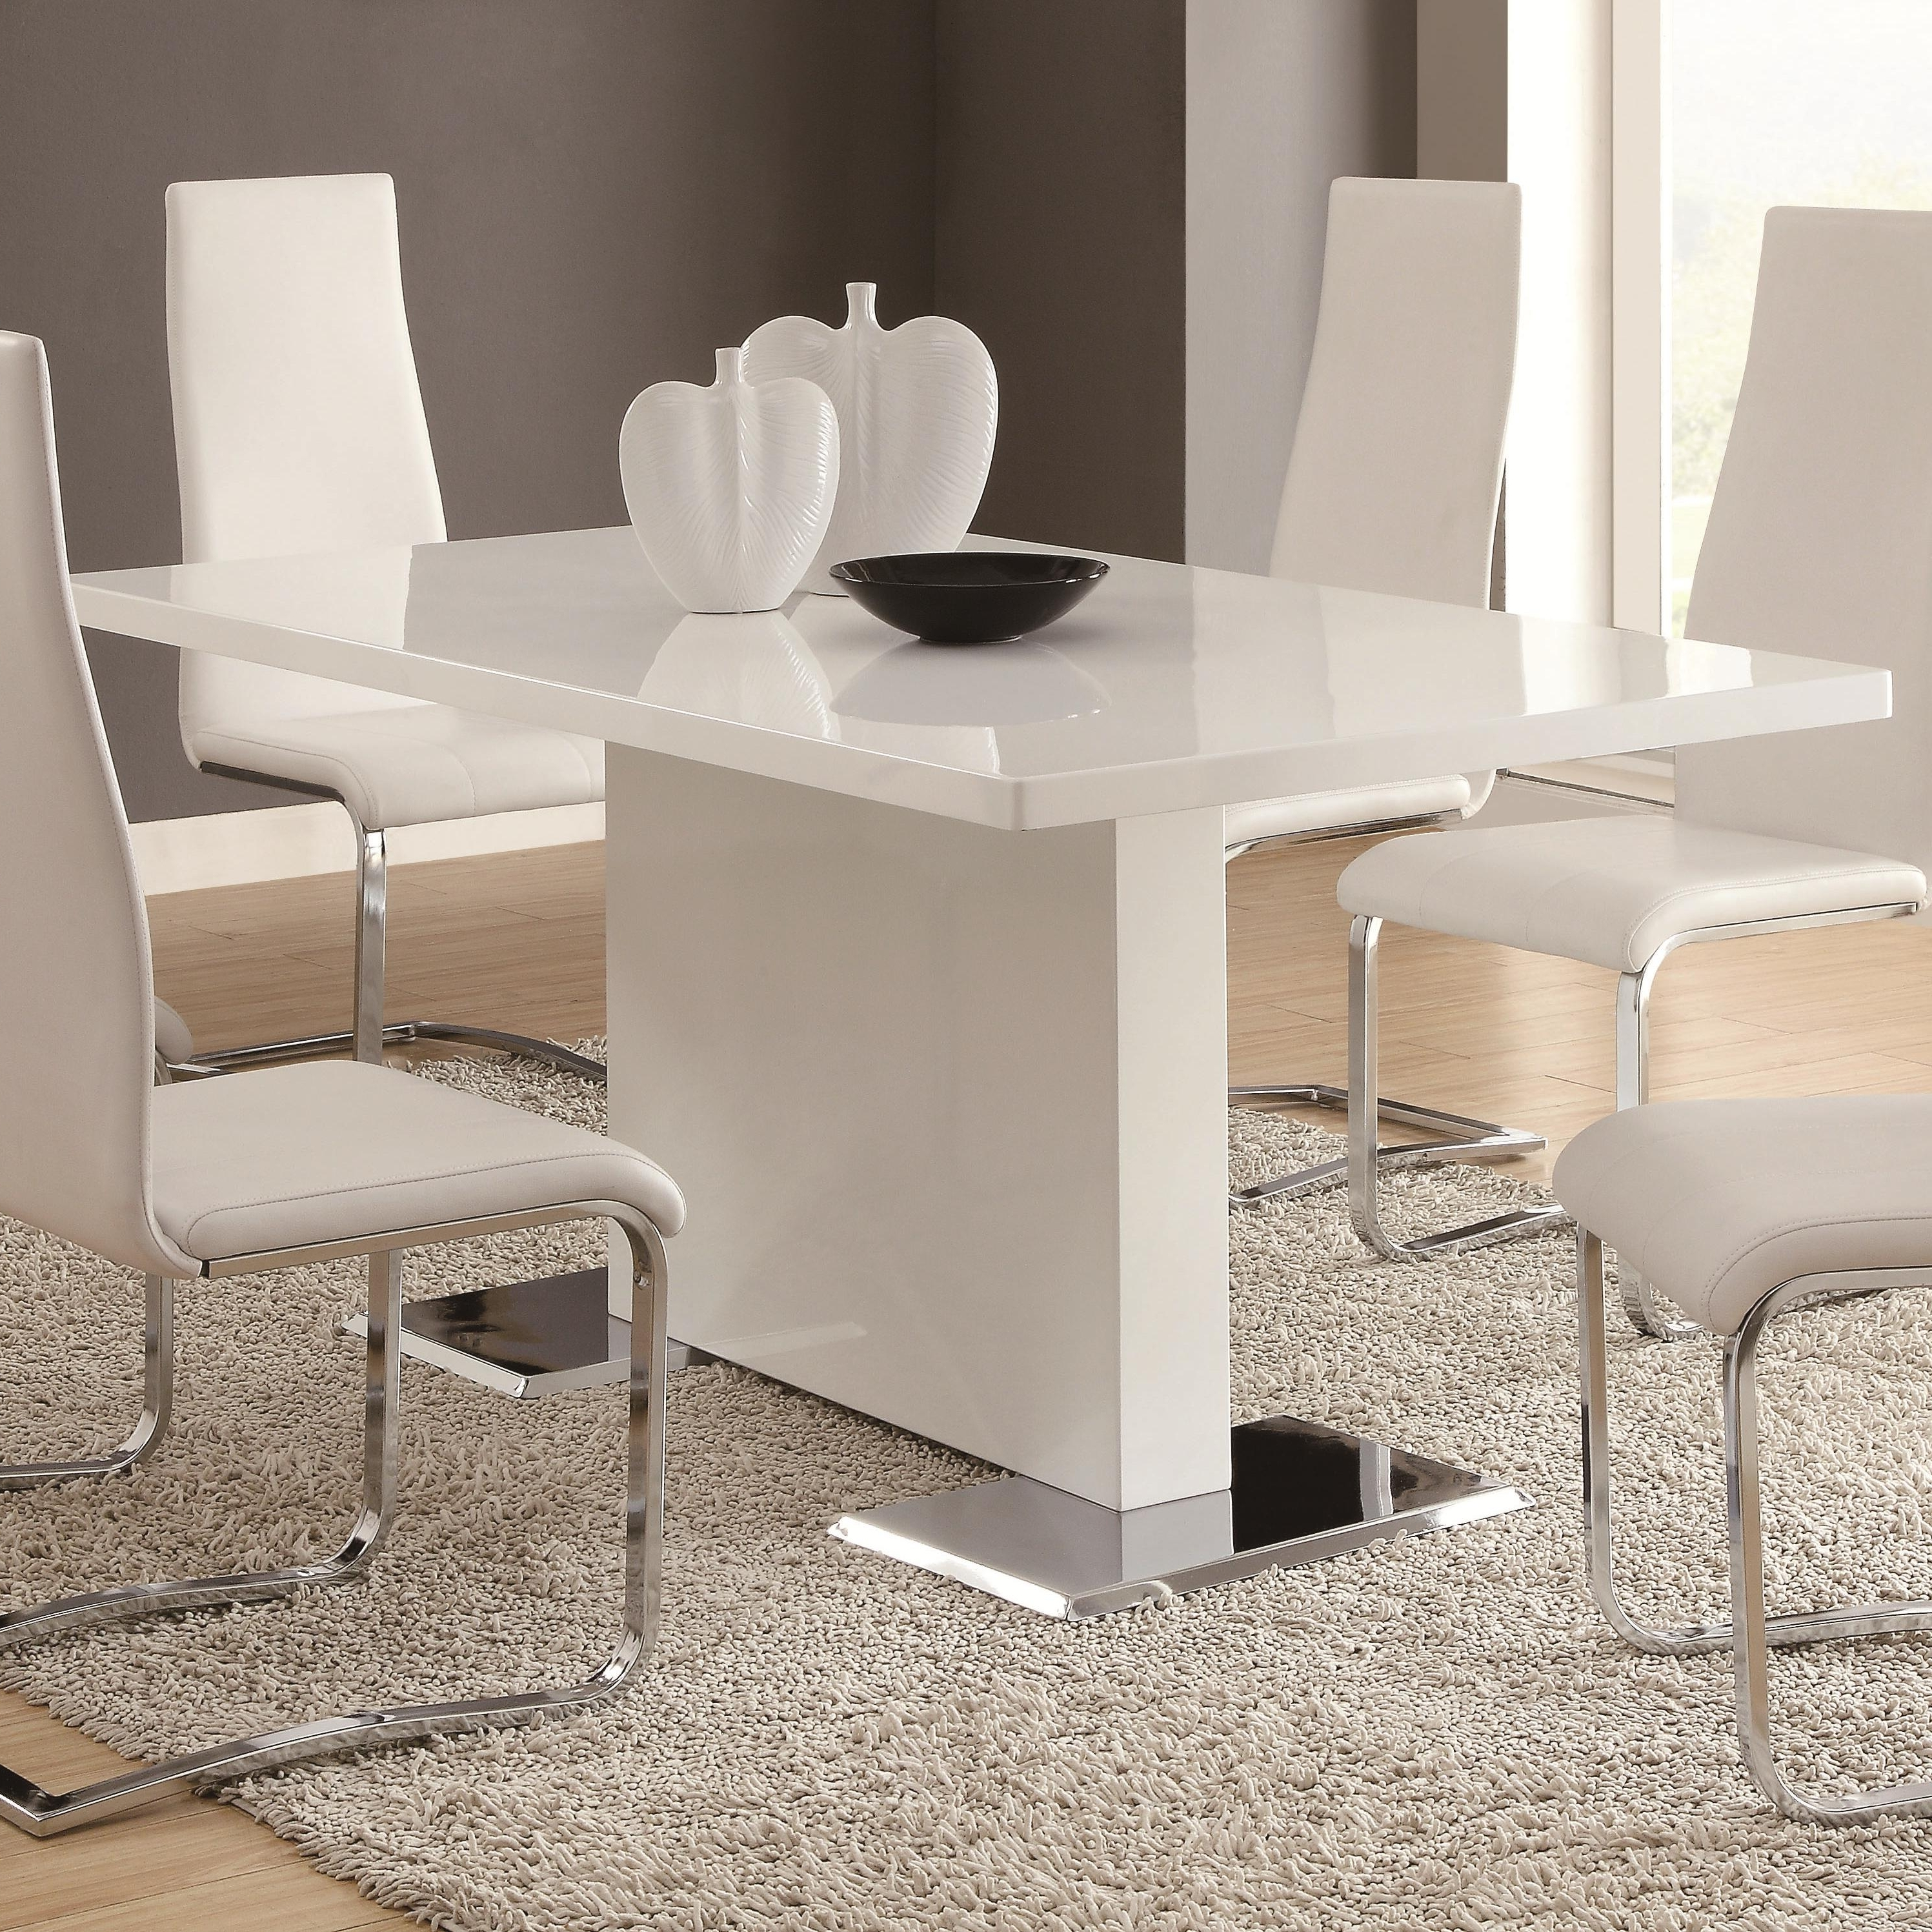 Chrome Leather Dining Chairs With Regard To Fashionable Coaster Modern Dining 102310 White Dining Table With Chrome Metal (View 12 of 25)